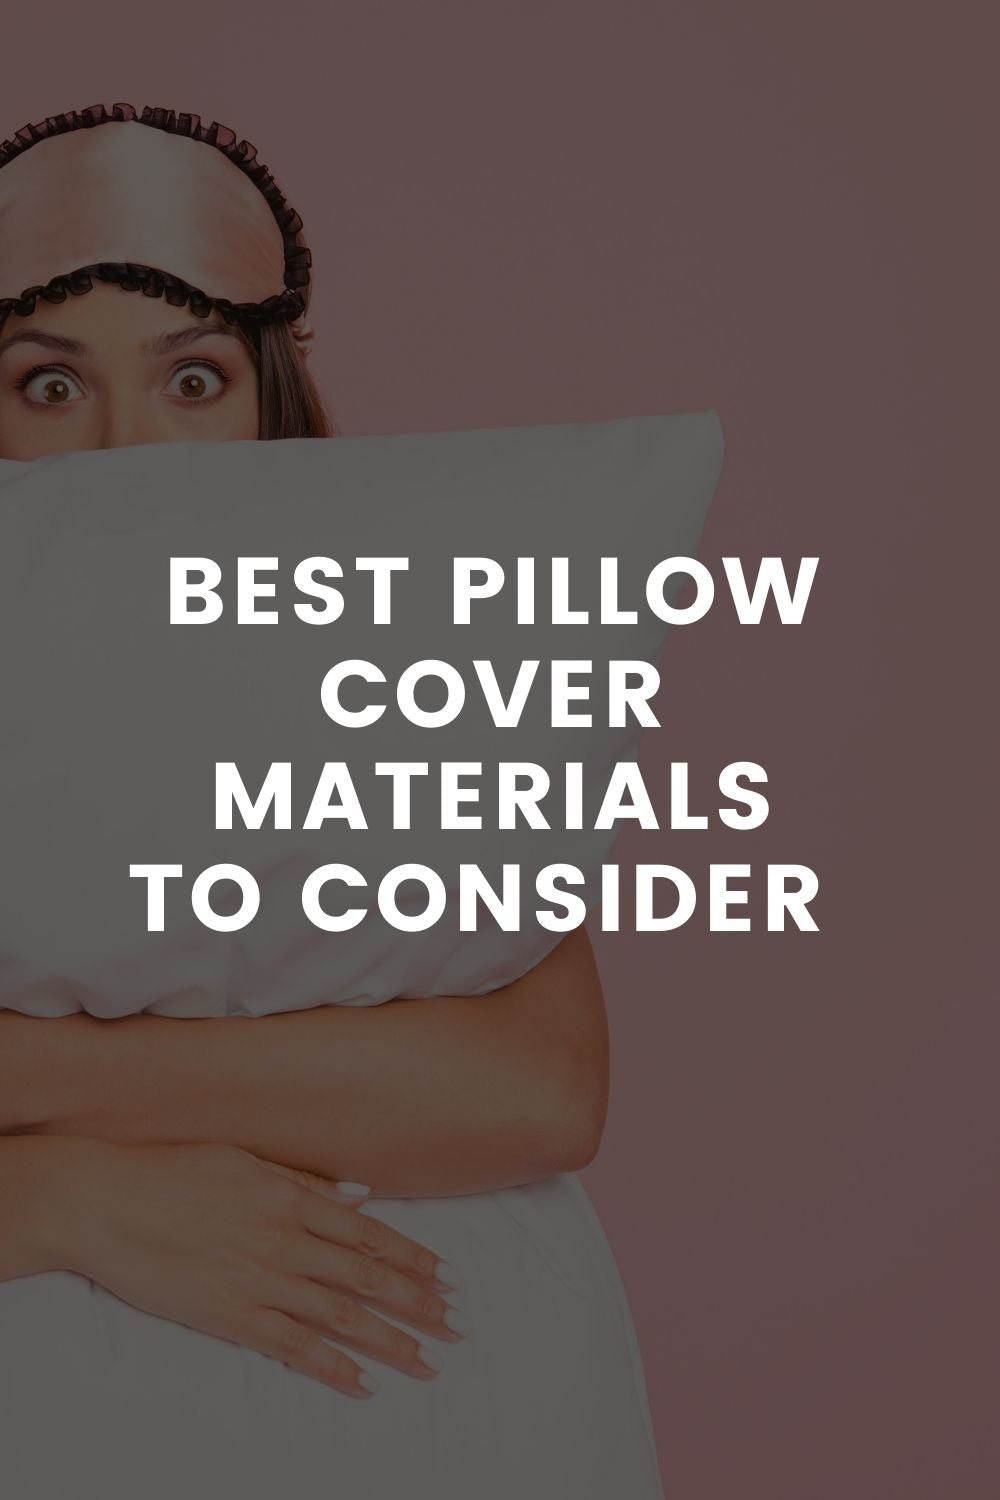 Best Pillow Cover Materials to Consider